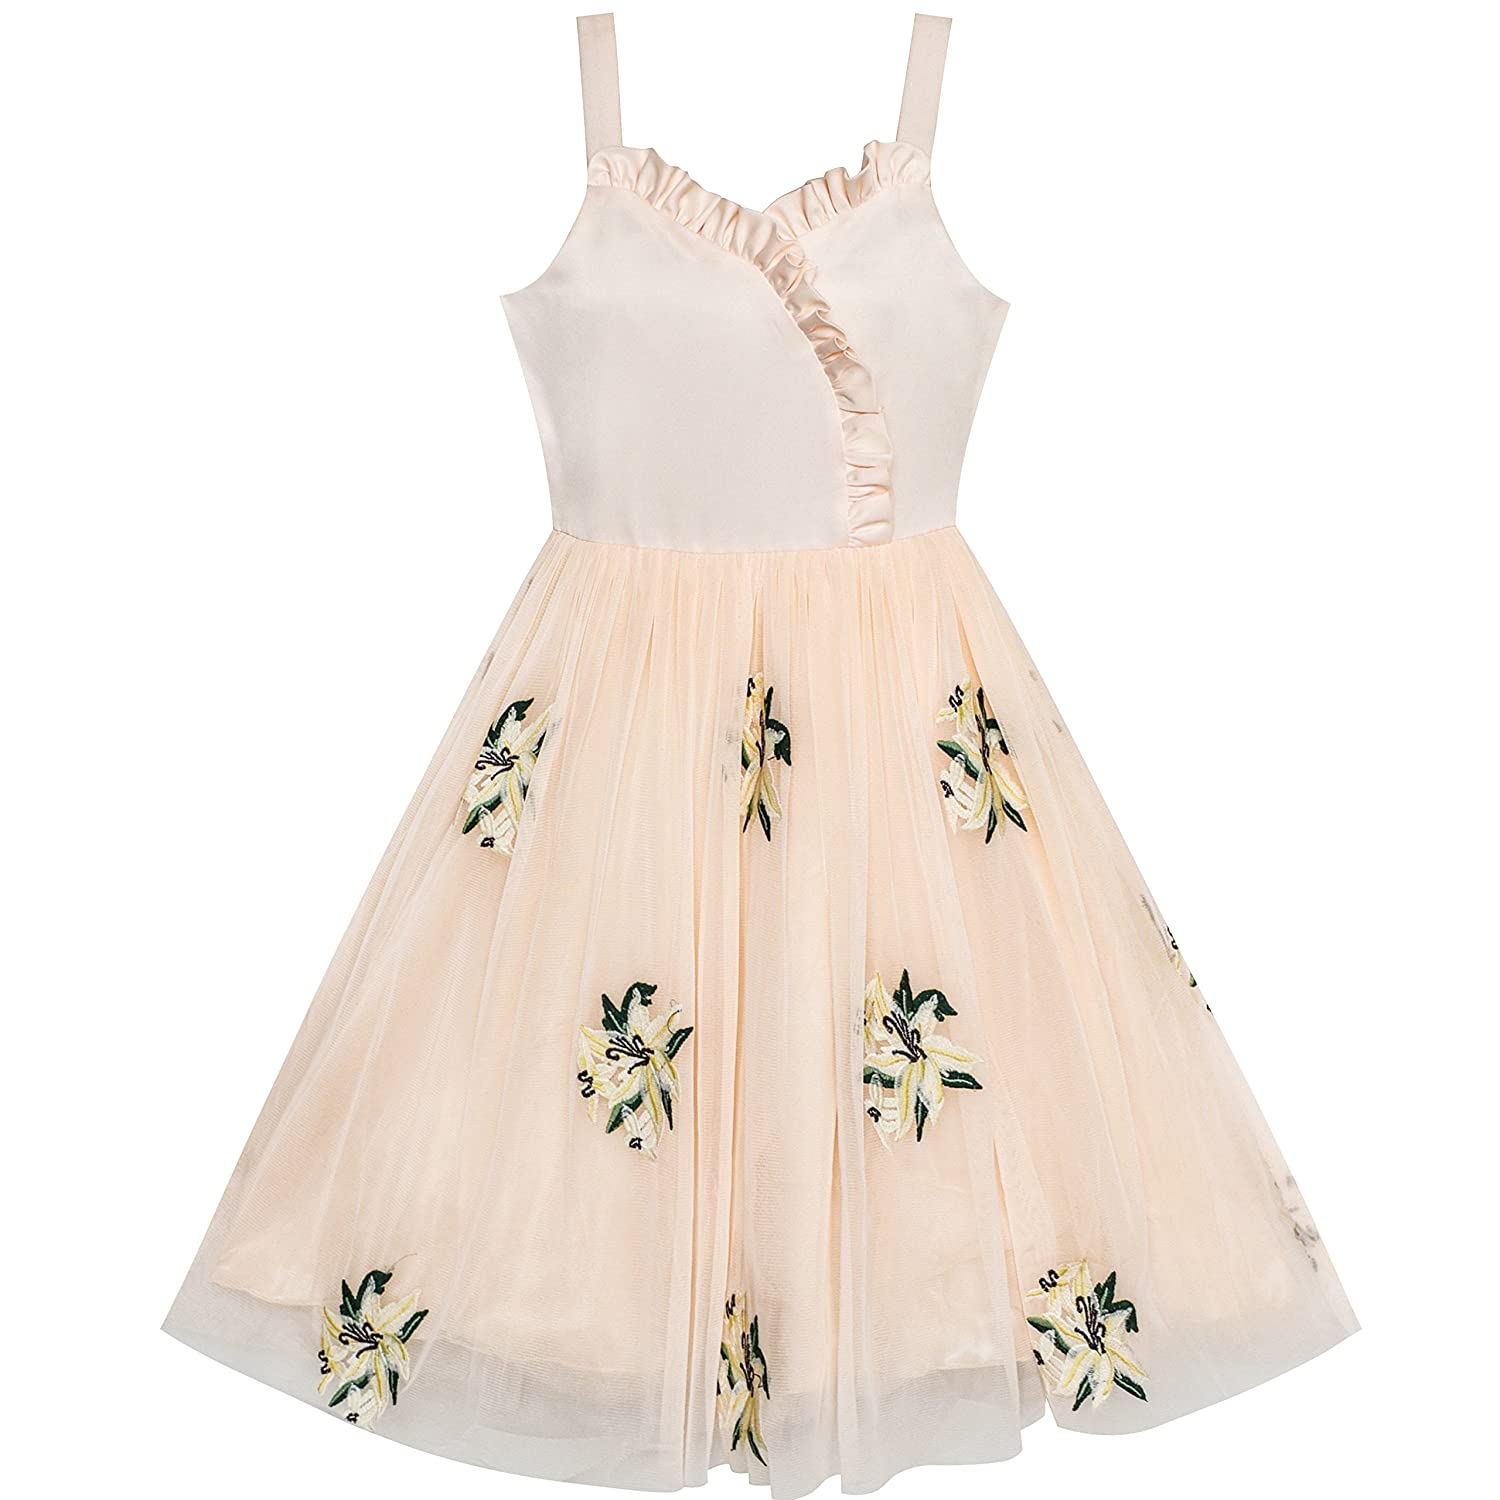 Amazon.com: Sunny Fashion Flower Girl Dress Lily Flower Embroidered Wedding Party Size 6-12: Clothing